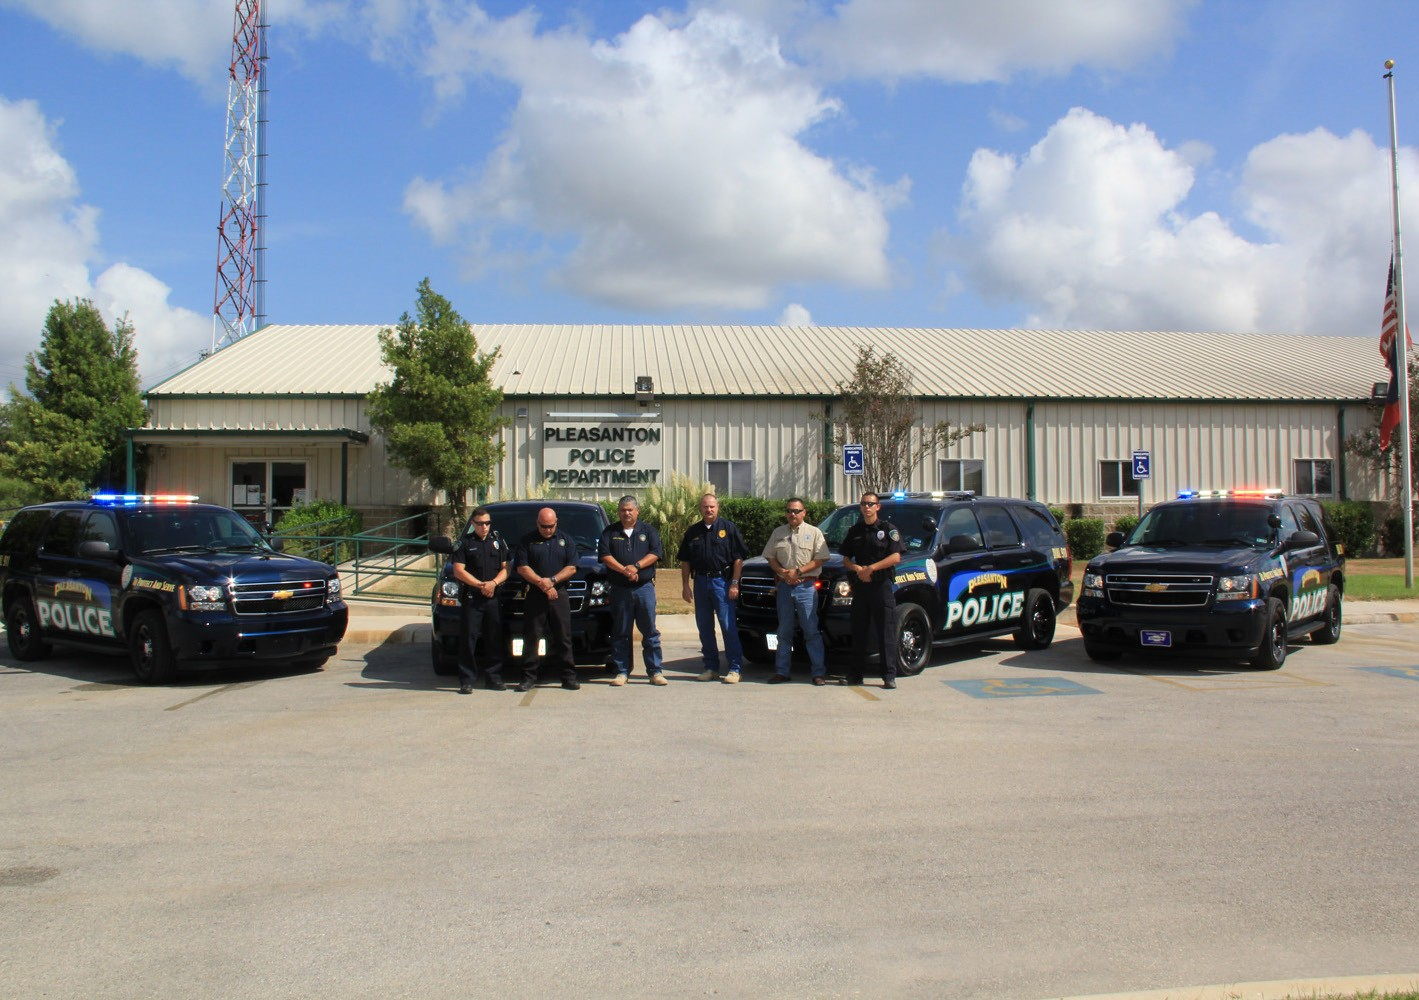 The Pleasanton Police Department gathered at the station to pay respect to fallen Officer Goforth on September 4.